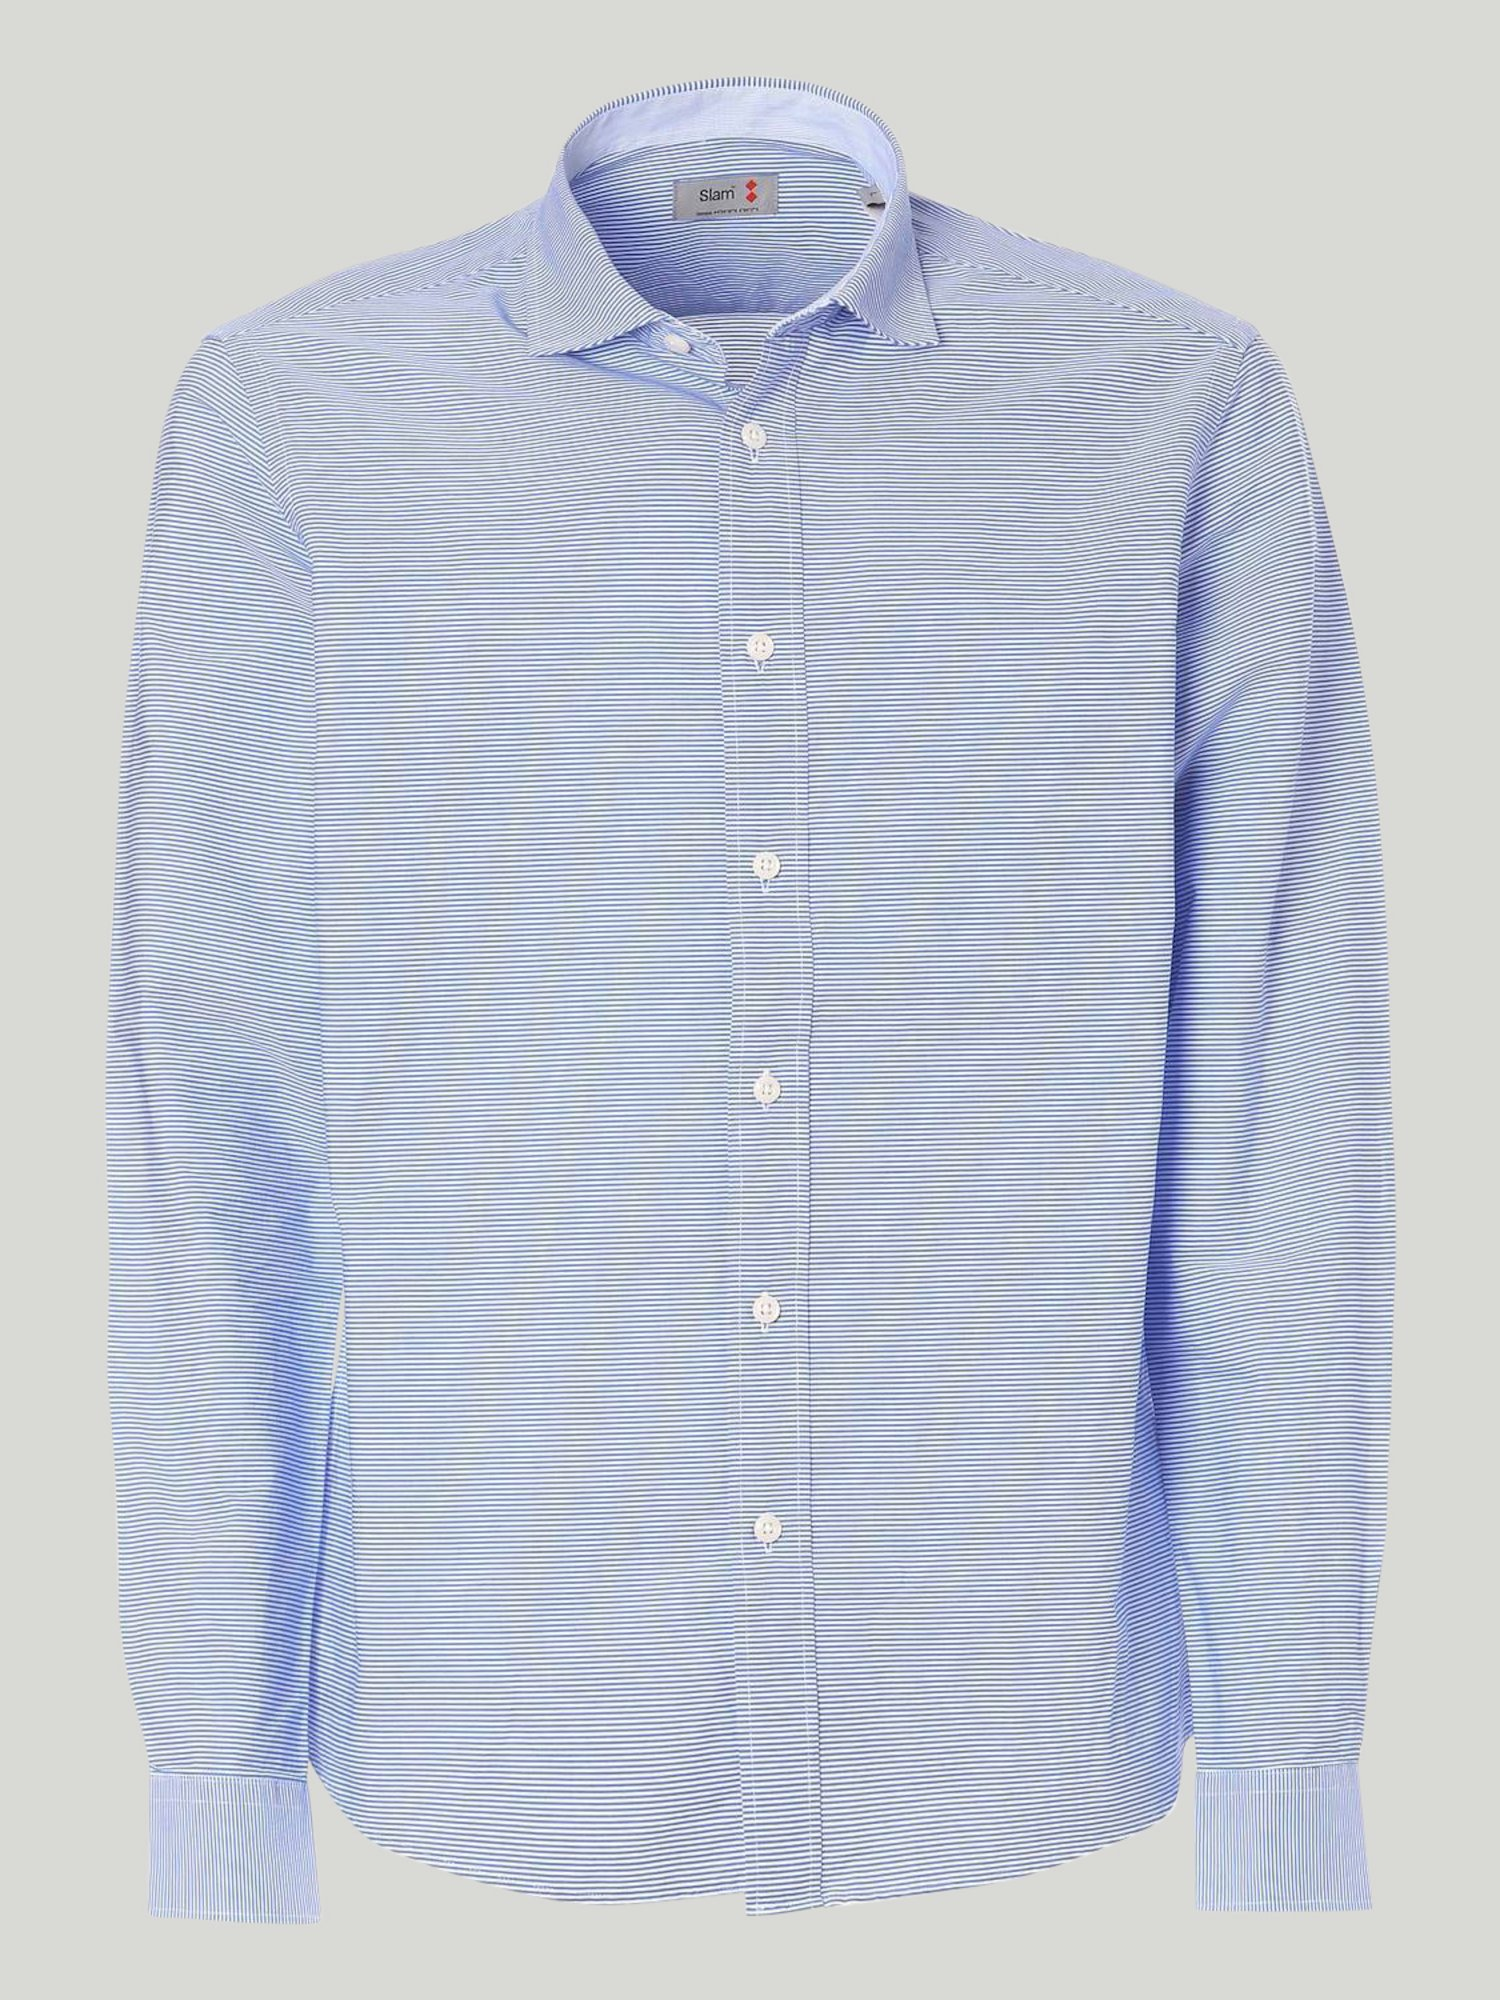 Keros shirt - Striped White / Light Blue